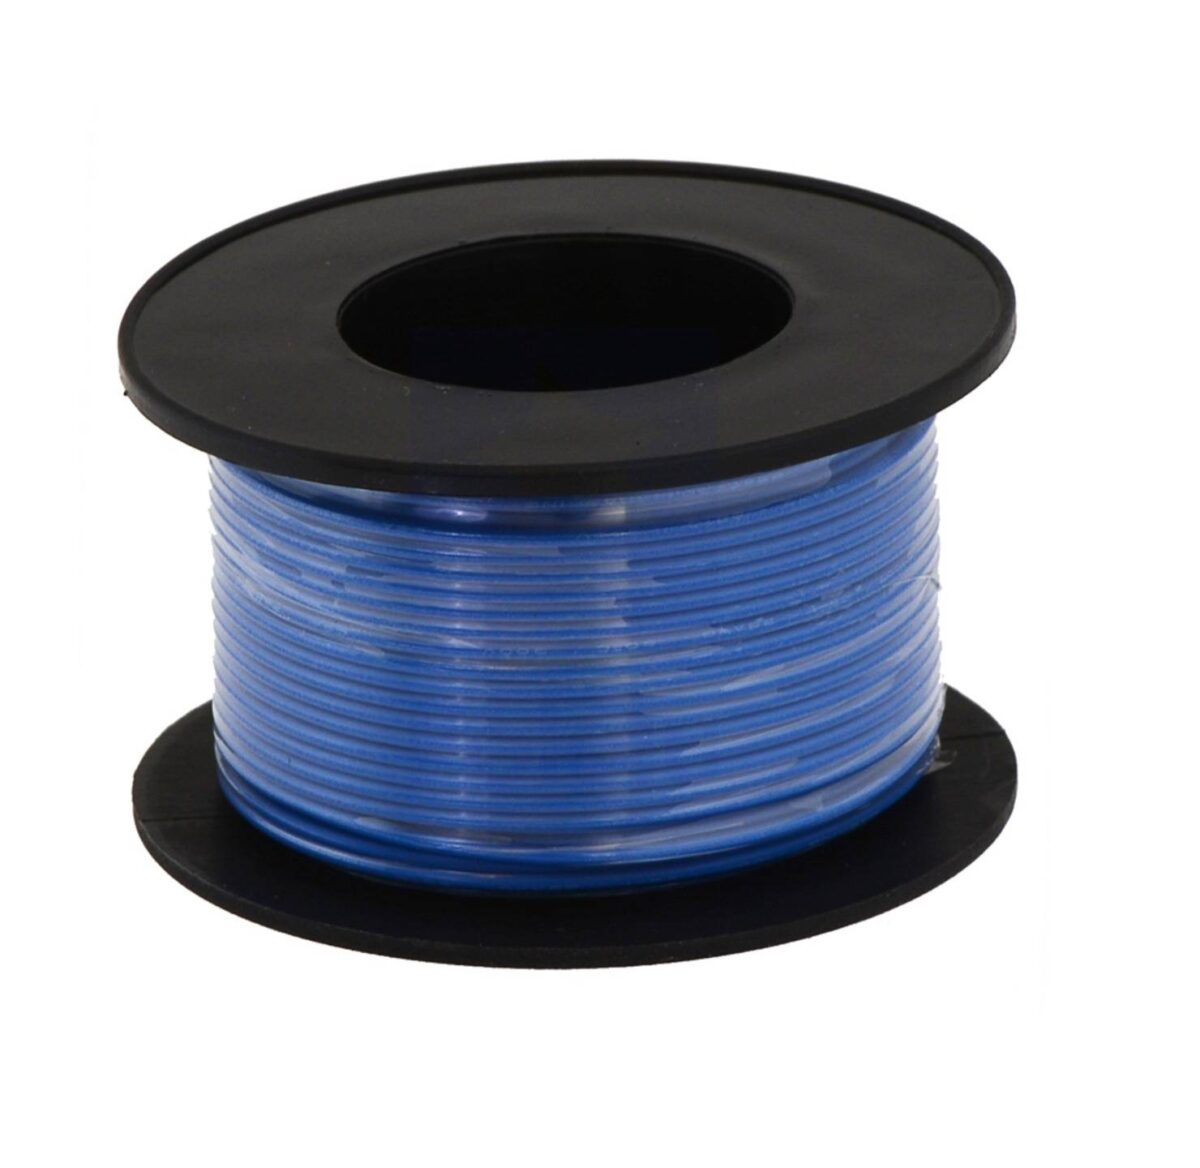 Sharvielectronics: Best Online Electronic Products Bangalore | Multistrand Wire Blue in Color 3 meters 1 | Electronic store in bangalore